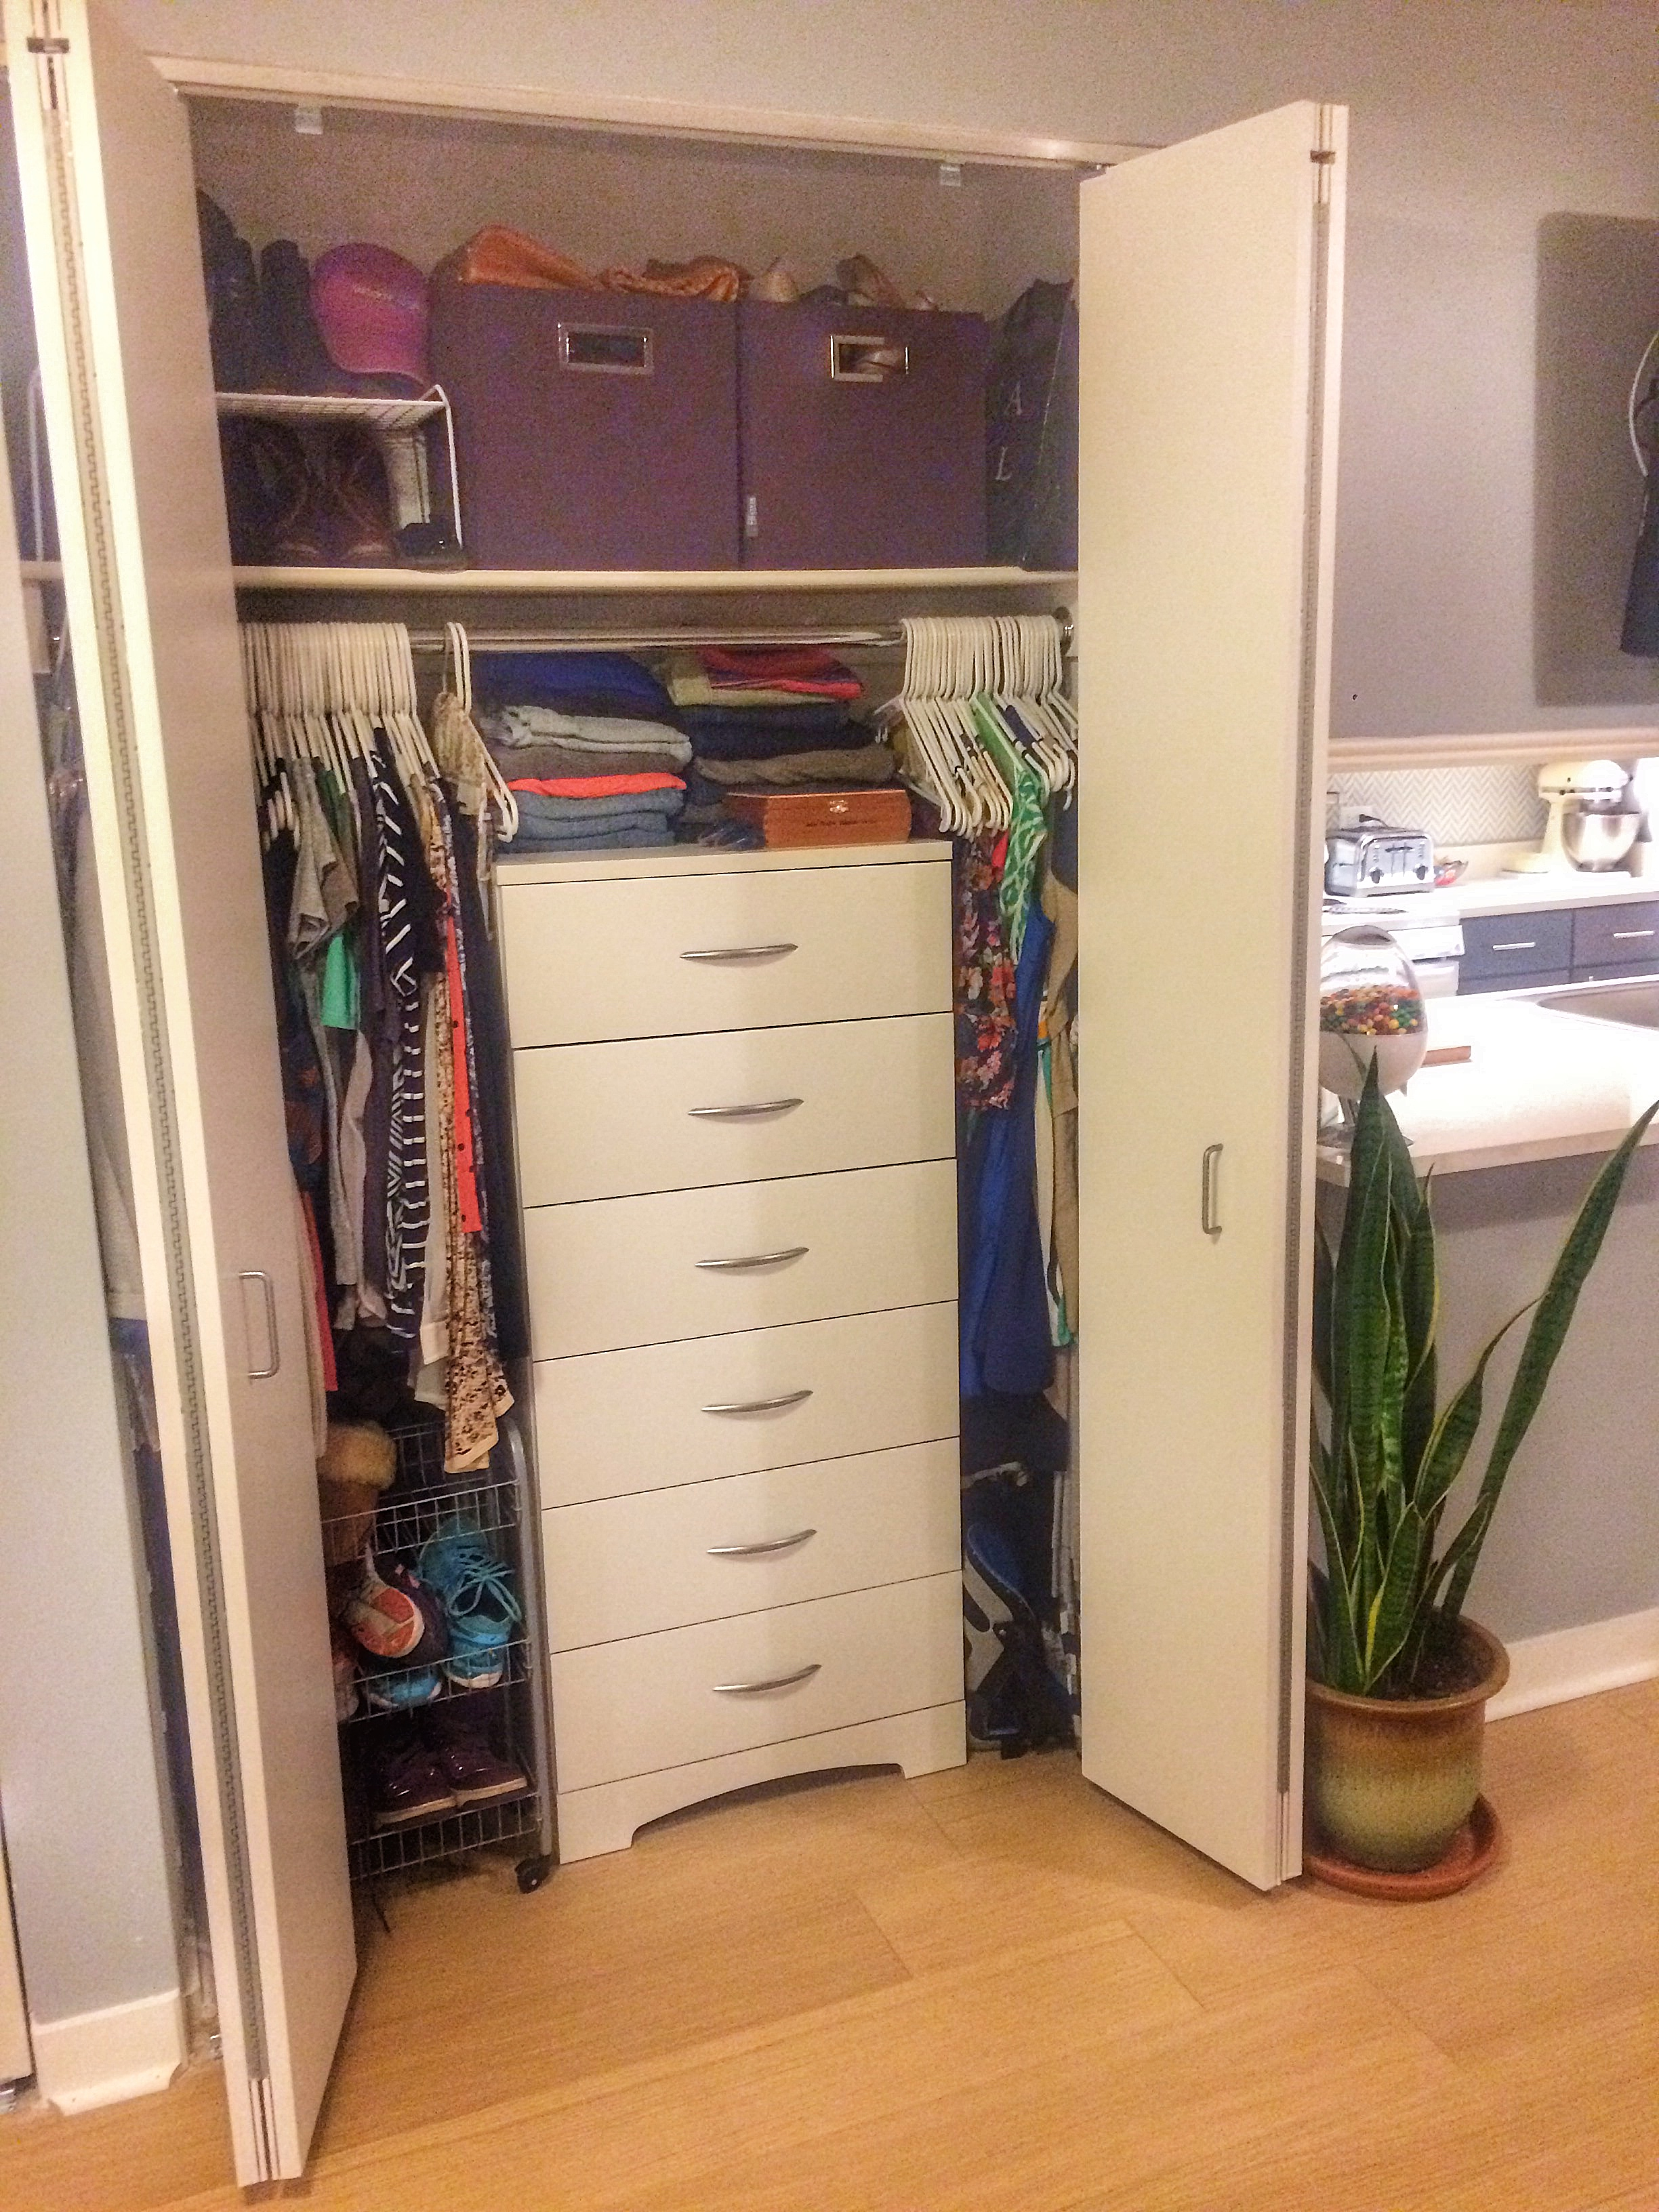 His and hers closets are highly organized for personal space and storage.